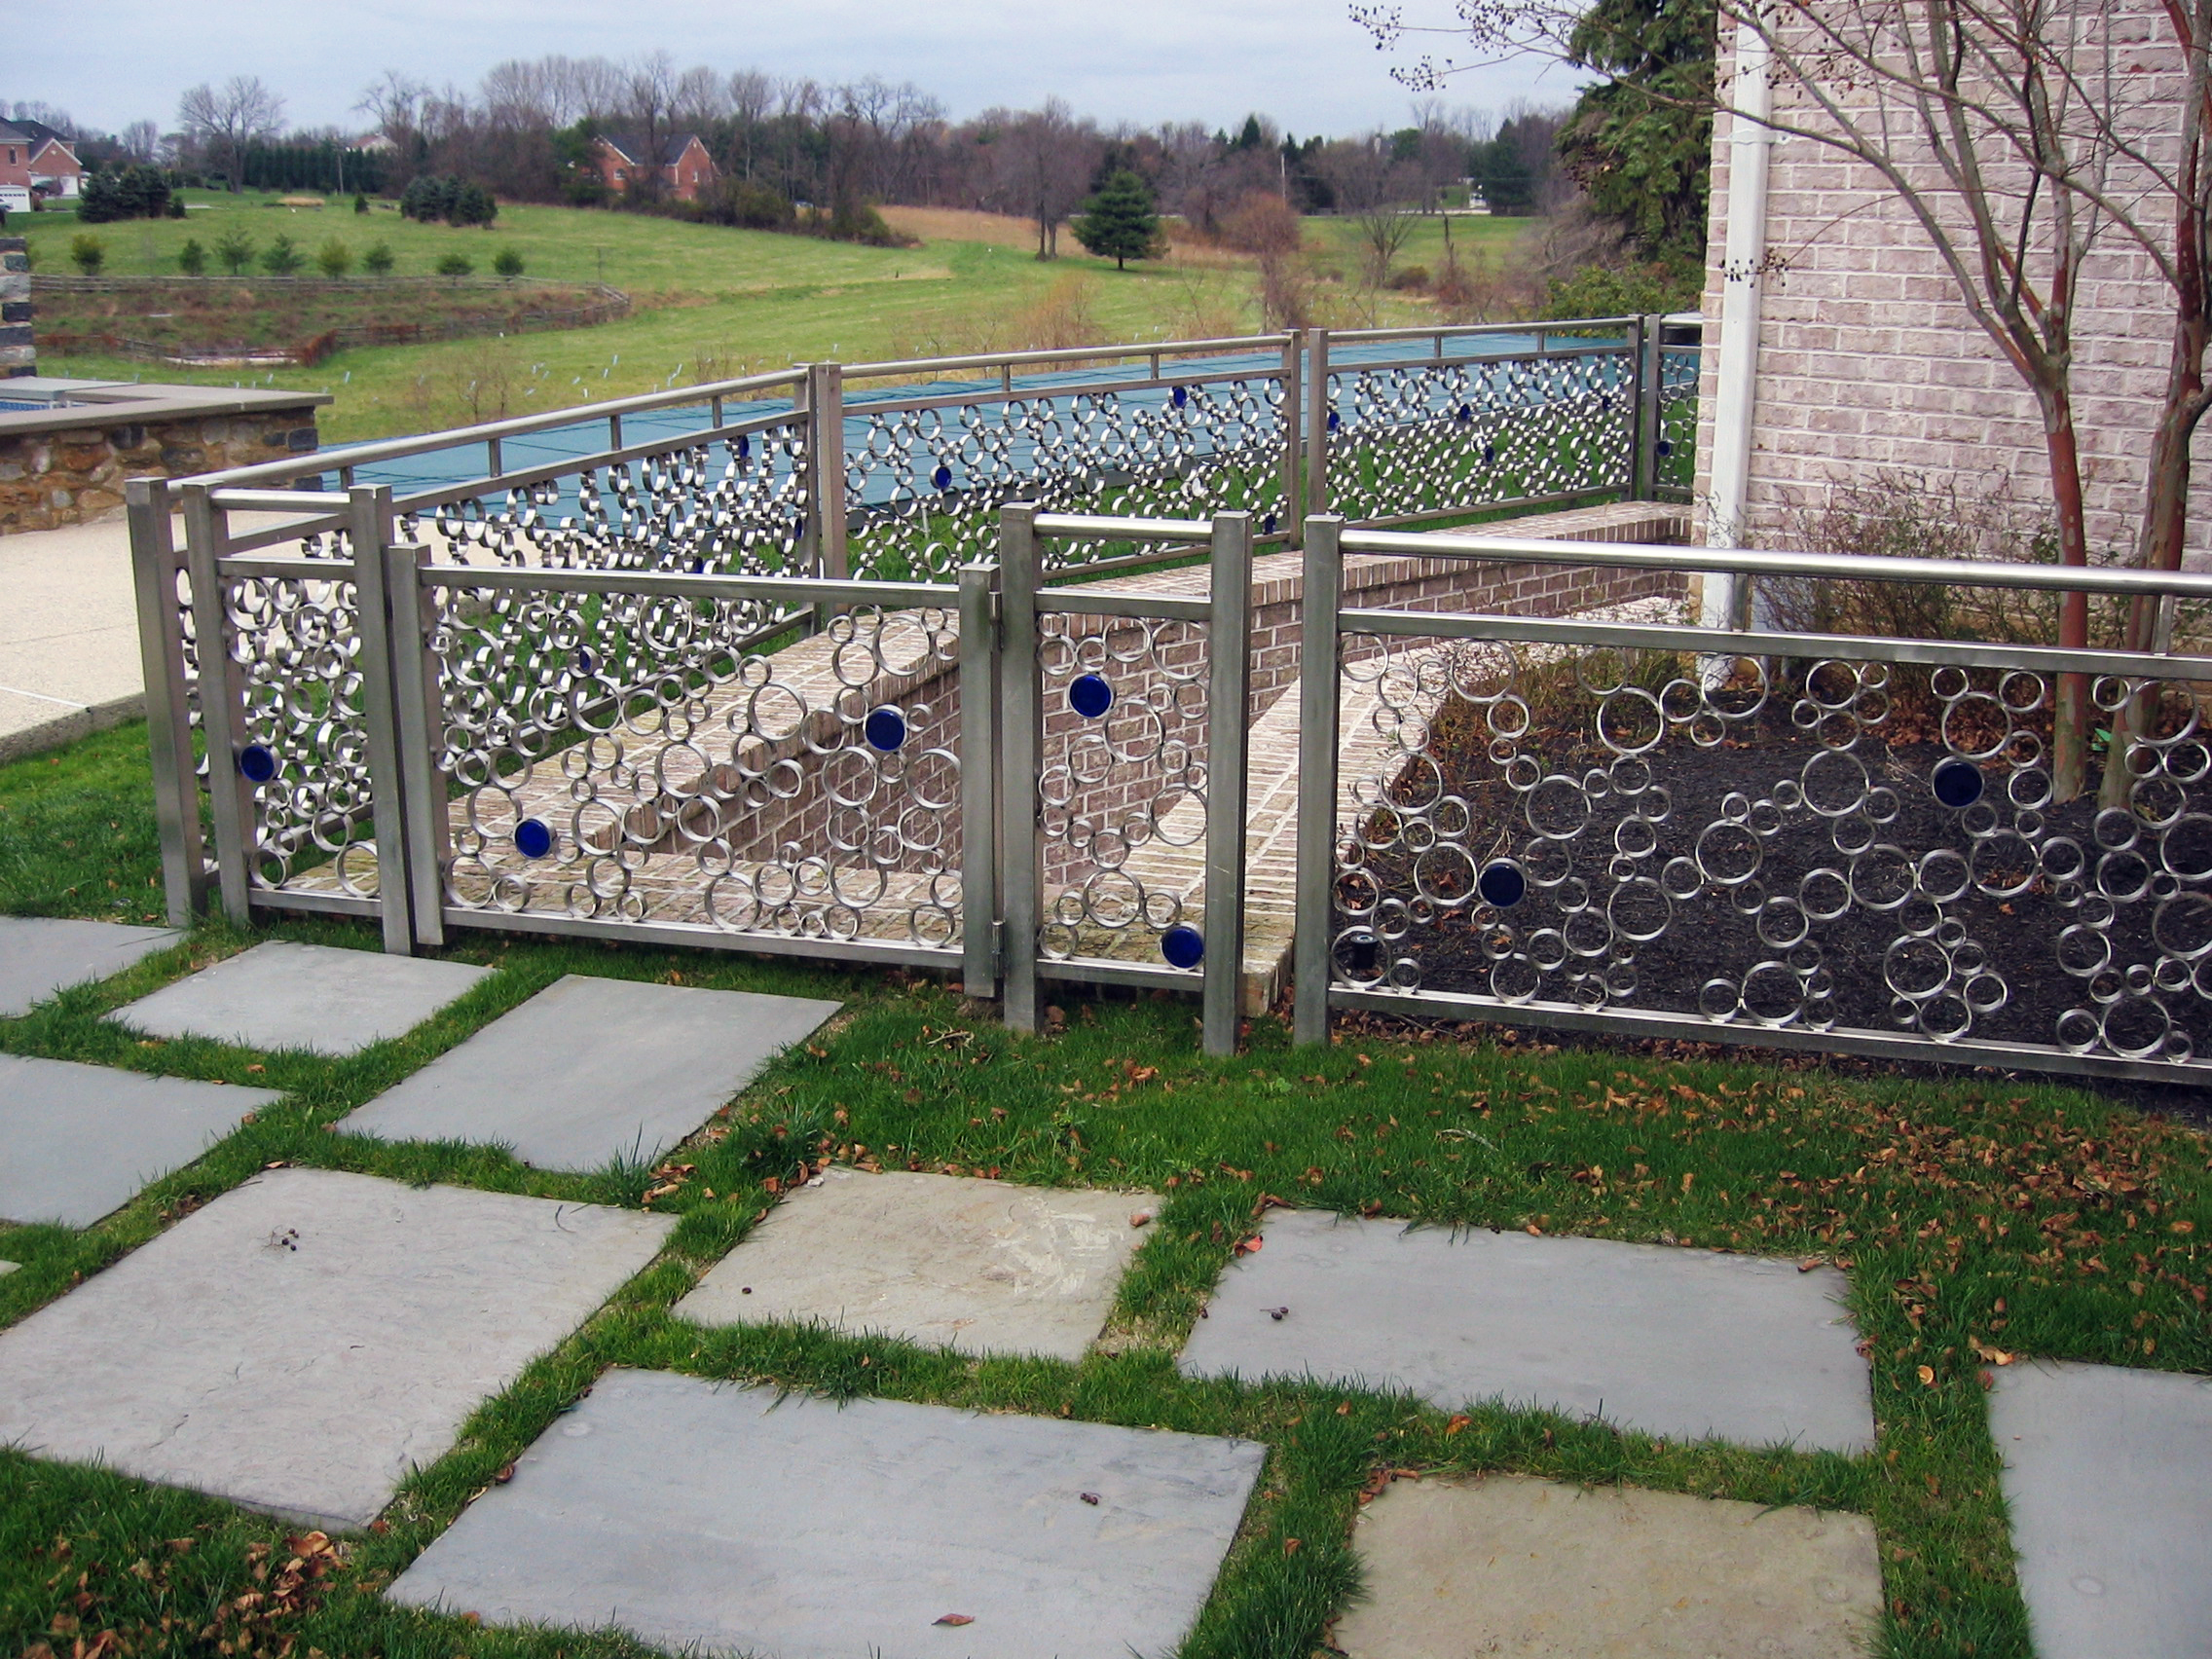 Concentric Railing and Gate